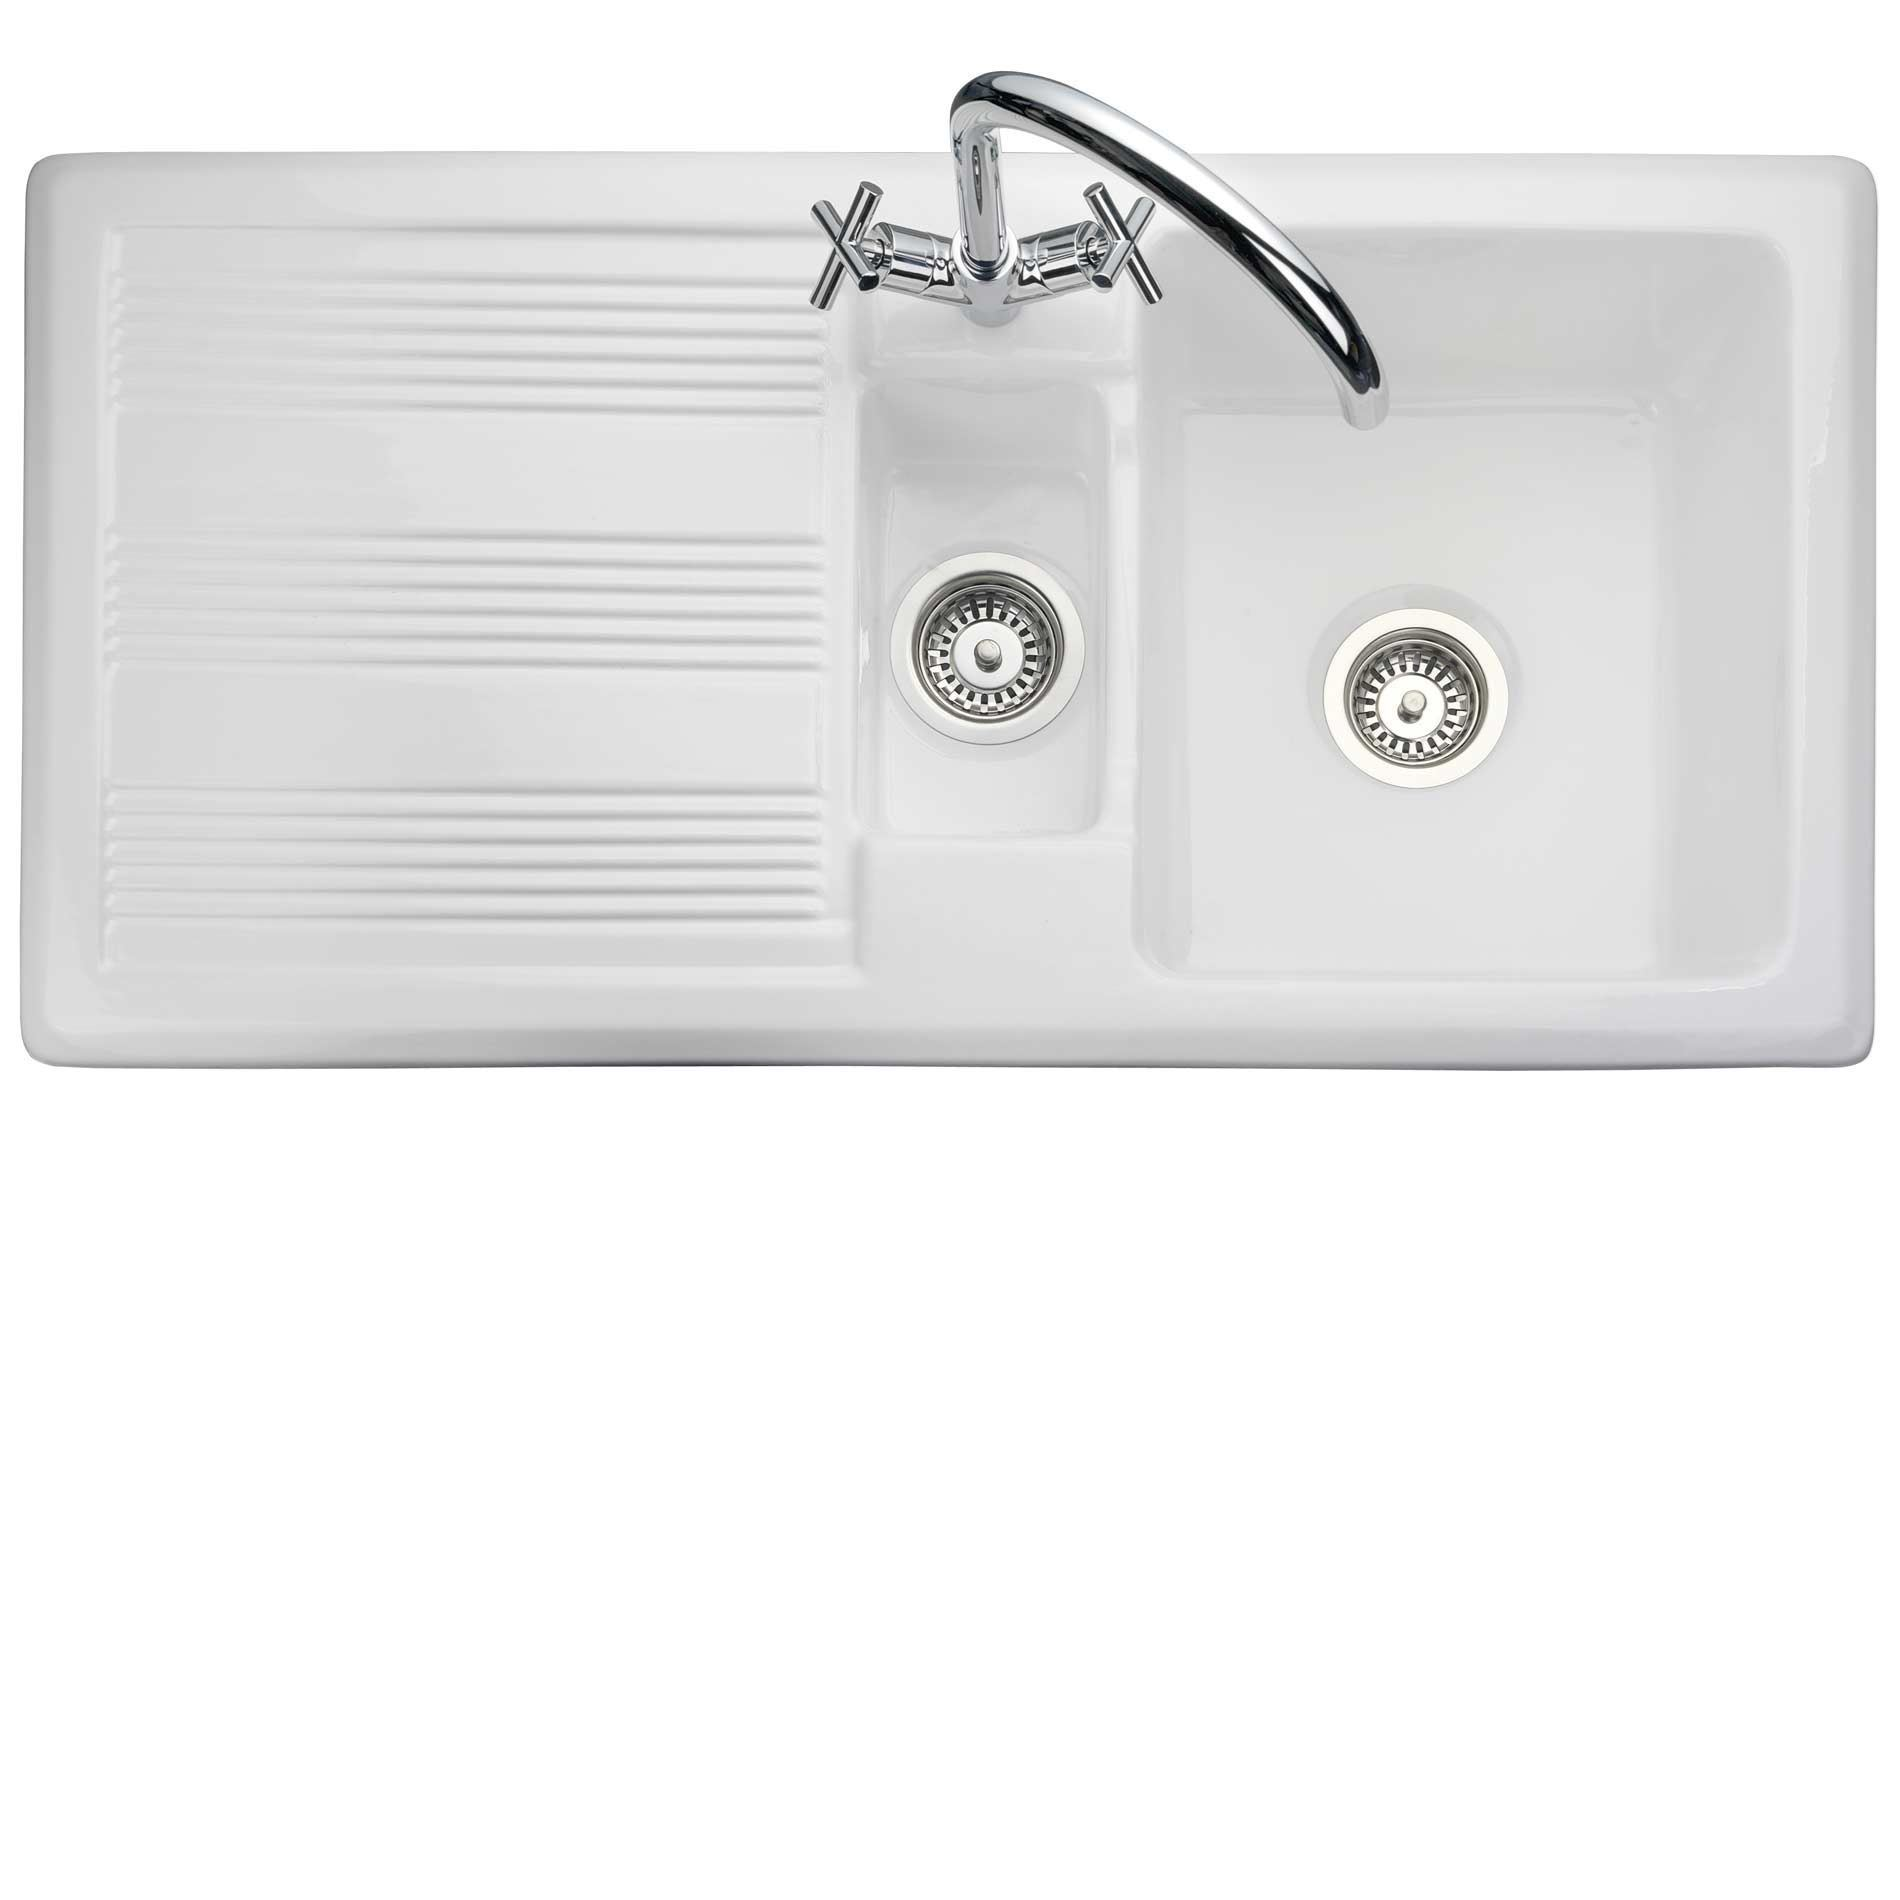 Rangemaster: Portland CPL10102WH Ceramic Sink - Kitchen Sinks & Taps